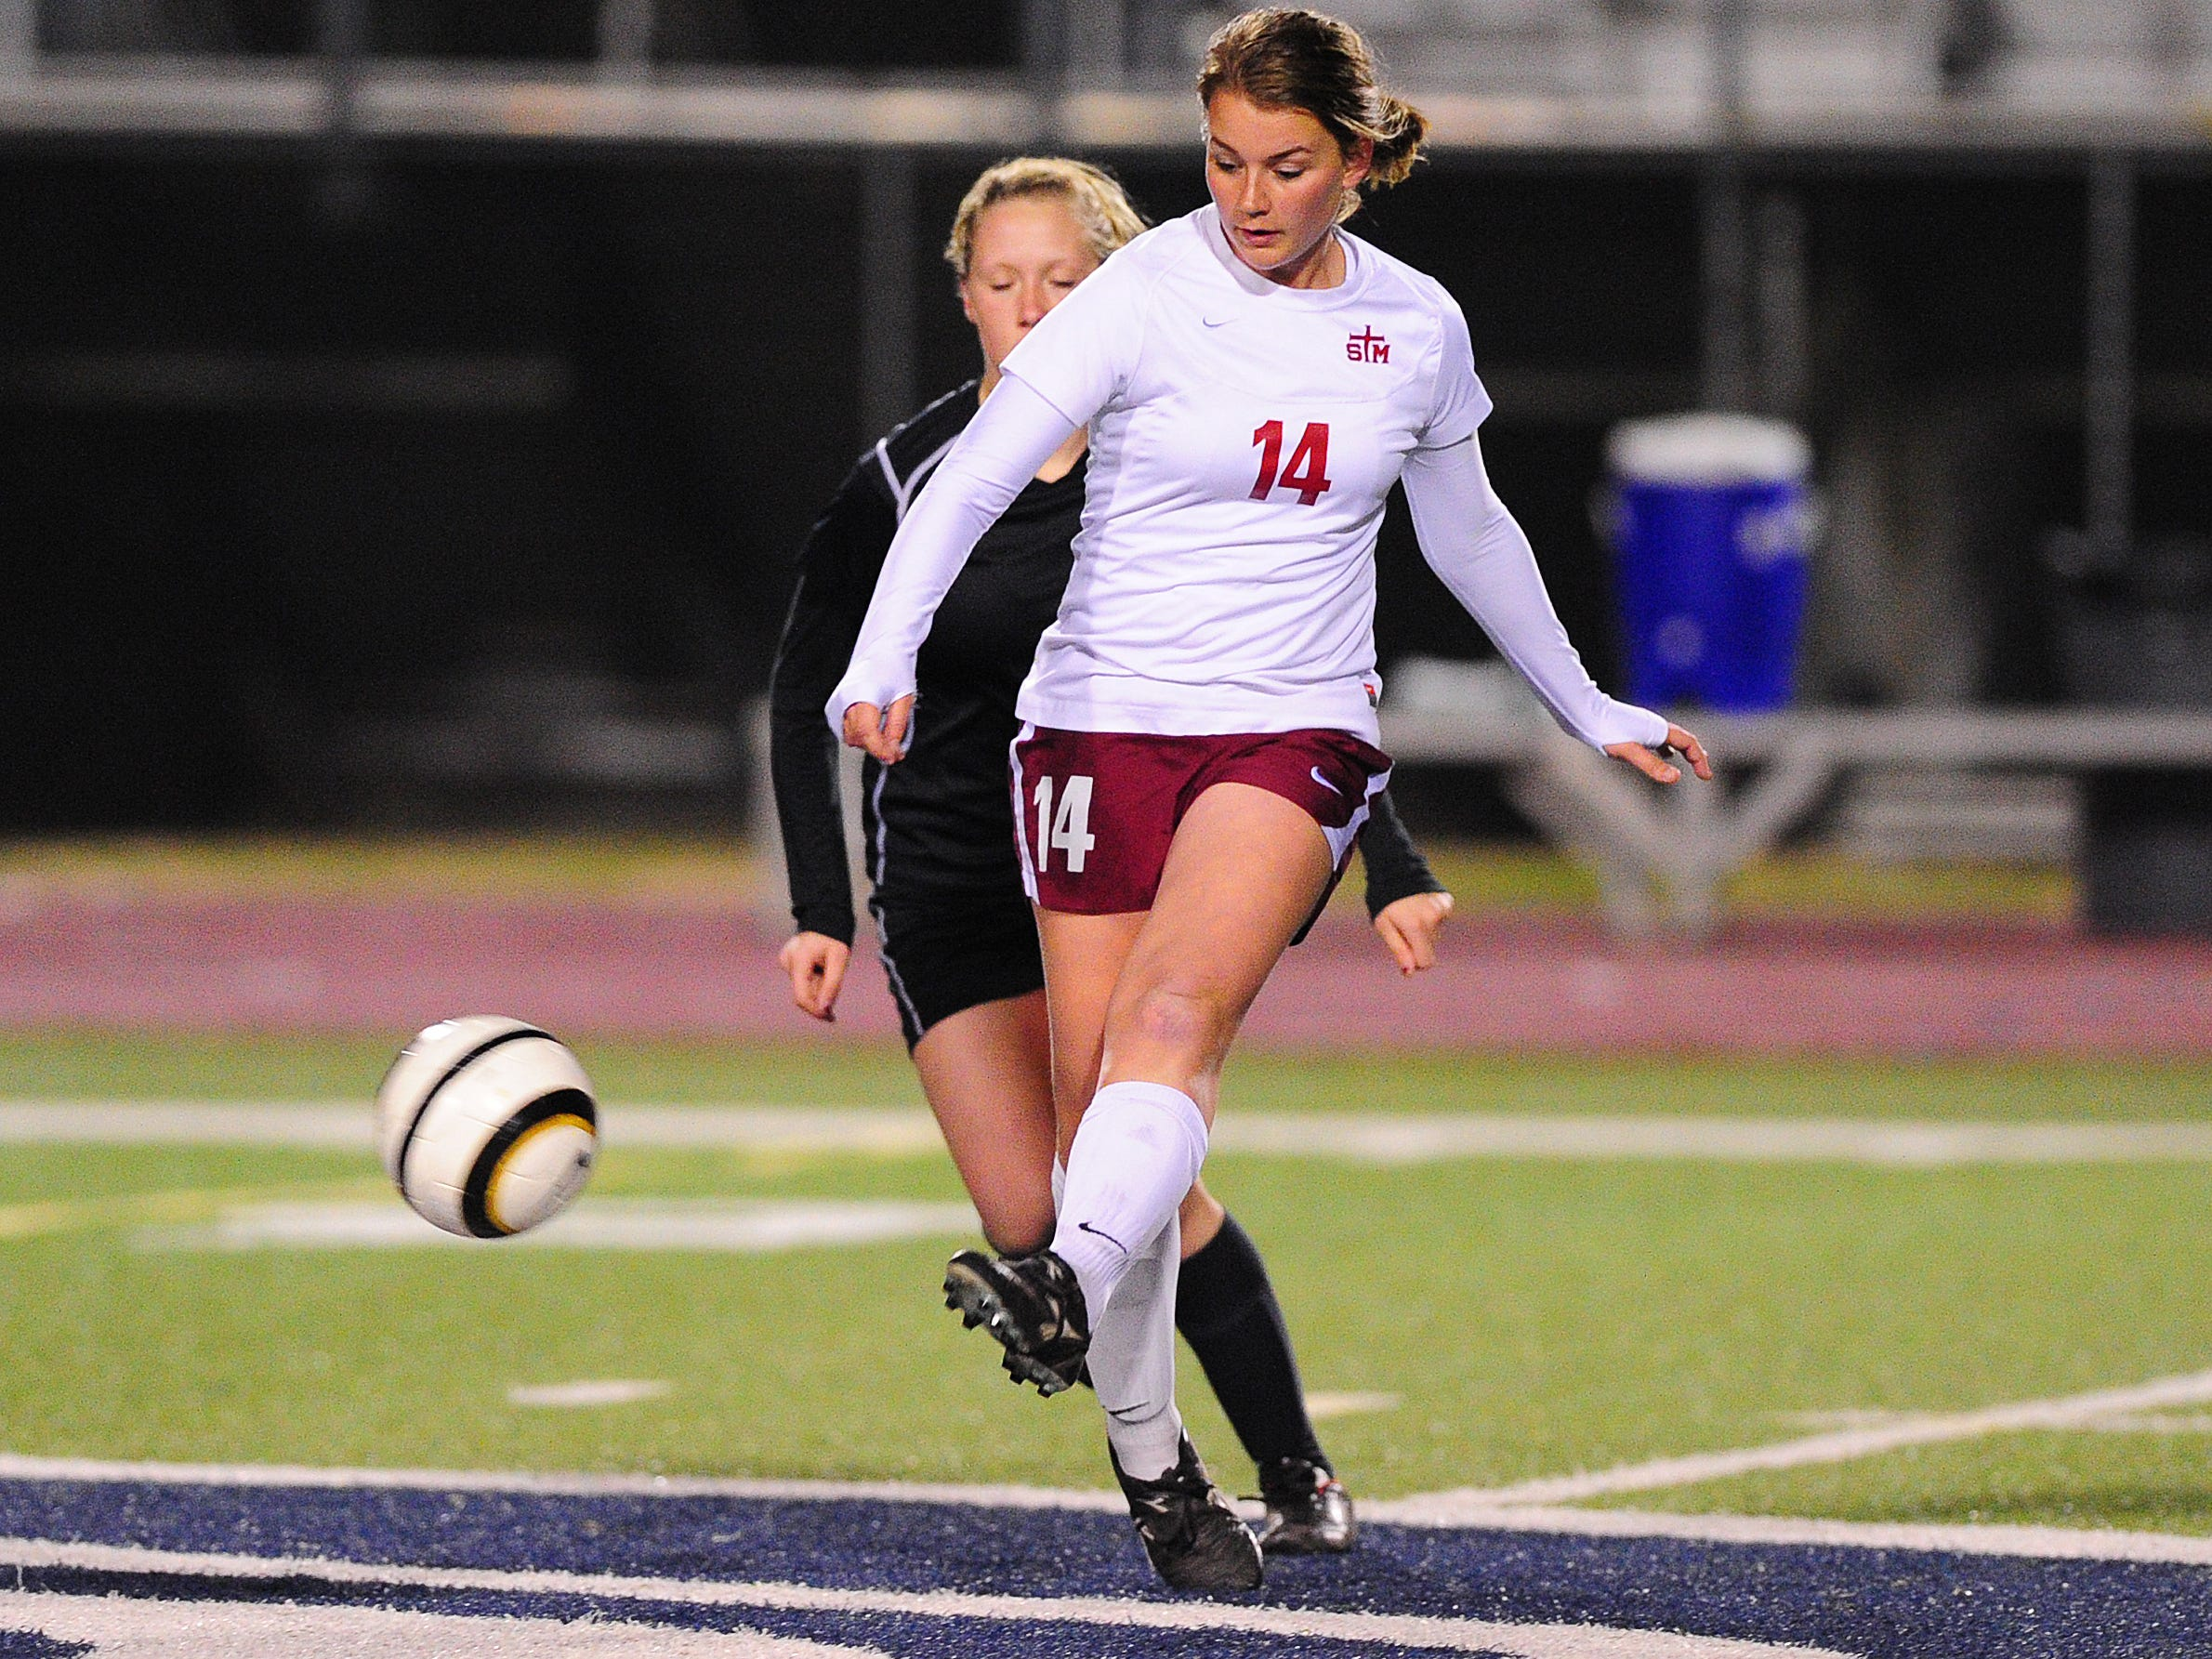 St. Thomas More's Gabby Miller (14) is hoping to finish out her soccer career with the Lady Cougars with a second straight trip to the state finals. STM is hosting two-time defending state champion Ben Franklin at 6 p.m. Friday in the Division II state semifinals.